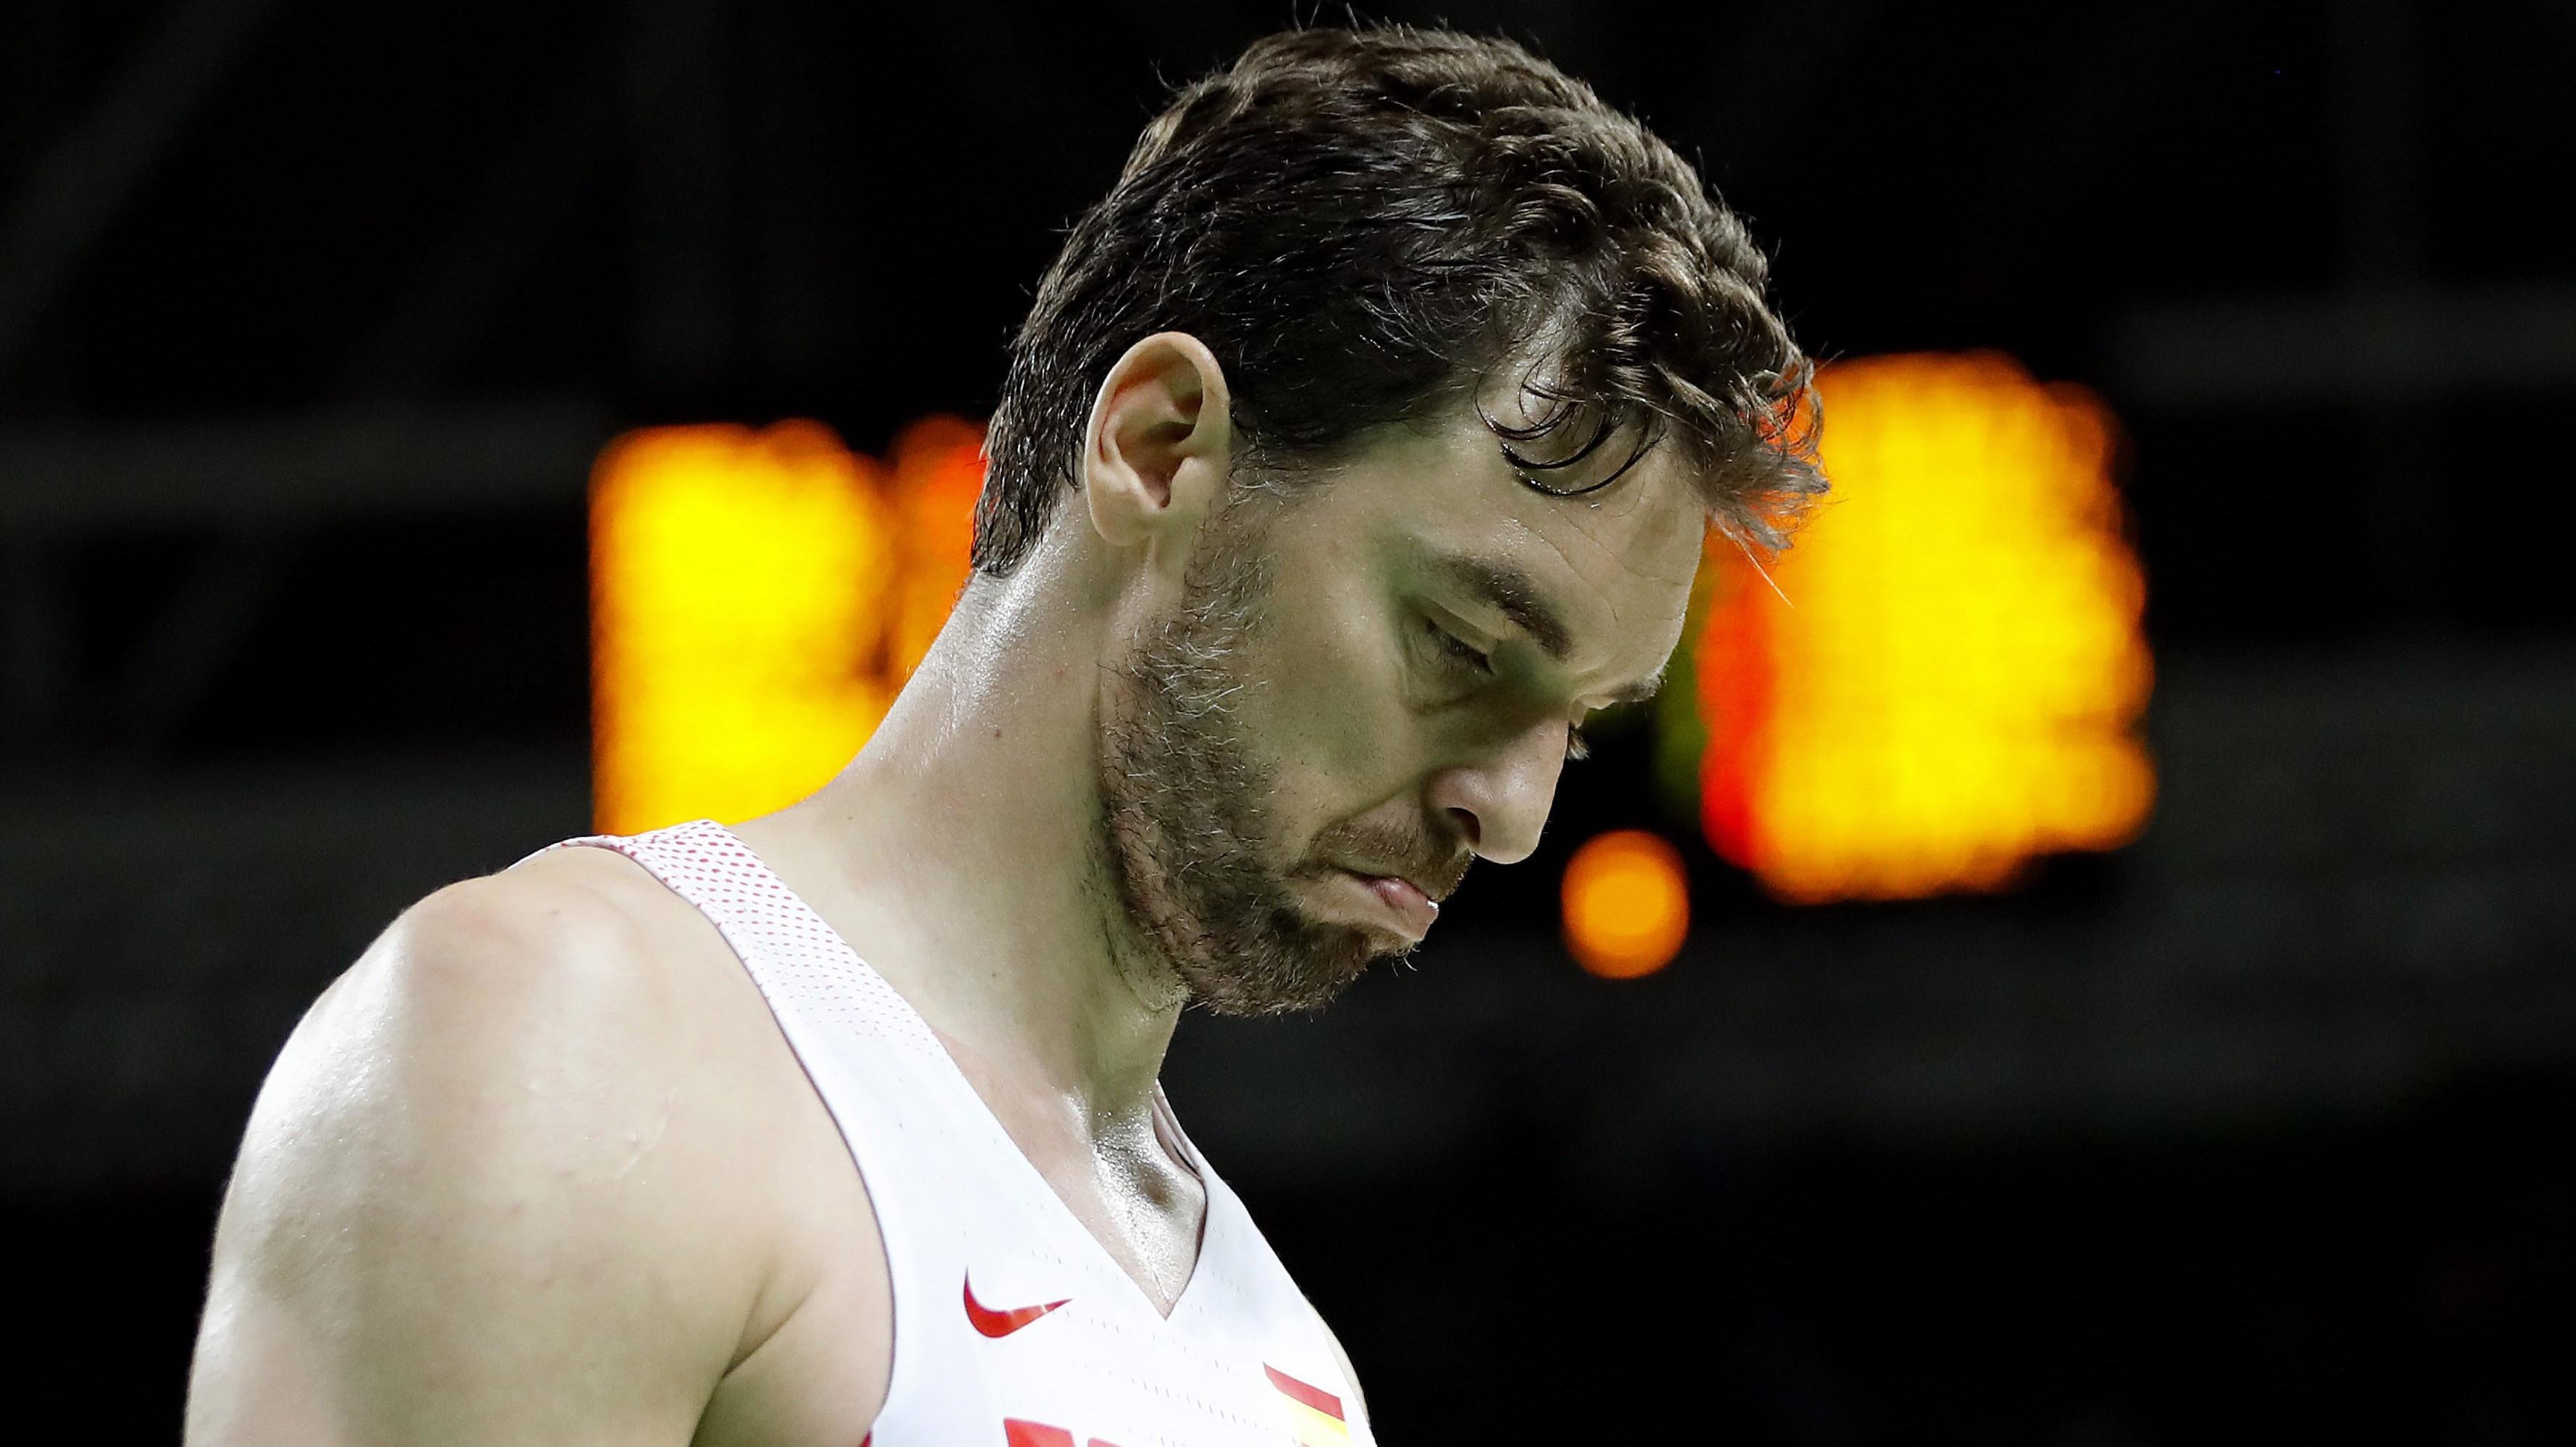 . Rio De Janeiro (Brazil), 09/08/2016.- Pau Gasol Spain reacts after a play against Brazil during the men's basketball game of the Rio 2016 Olympic Games at the Carioca Arena 1 in the Olympic Park in Rio de Janeiro, Brazil, 09 August 2016. (España,